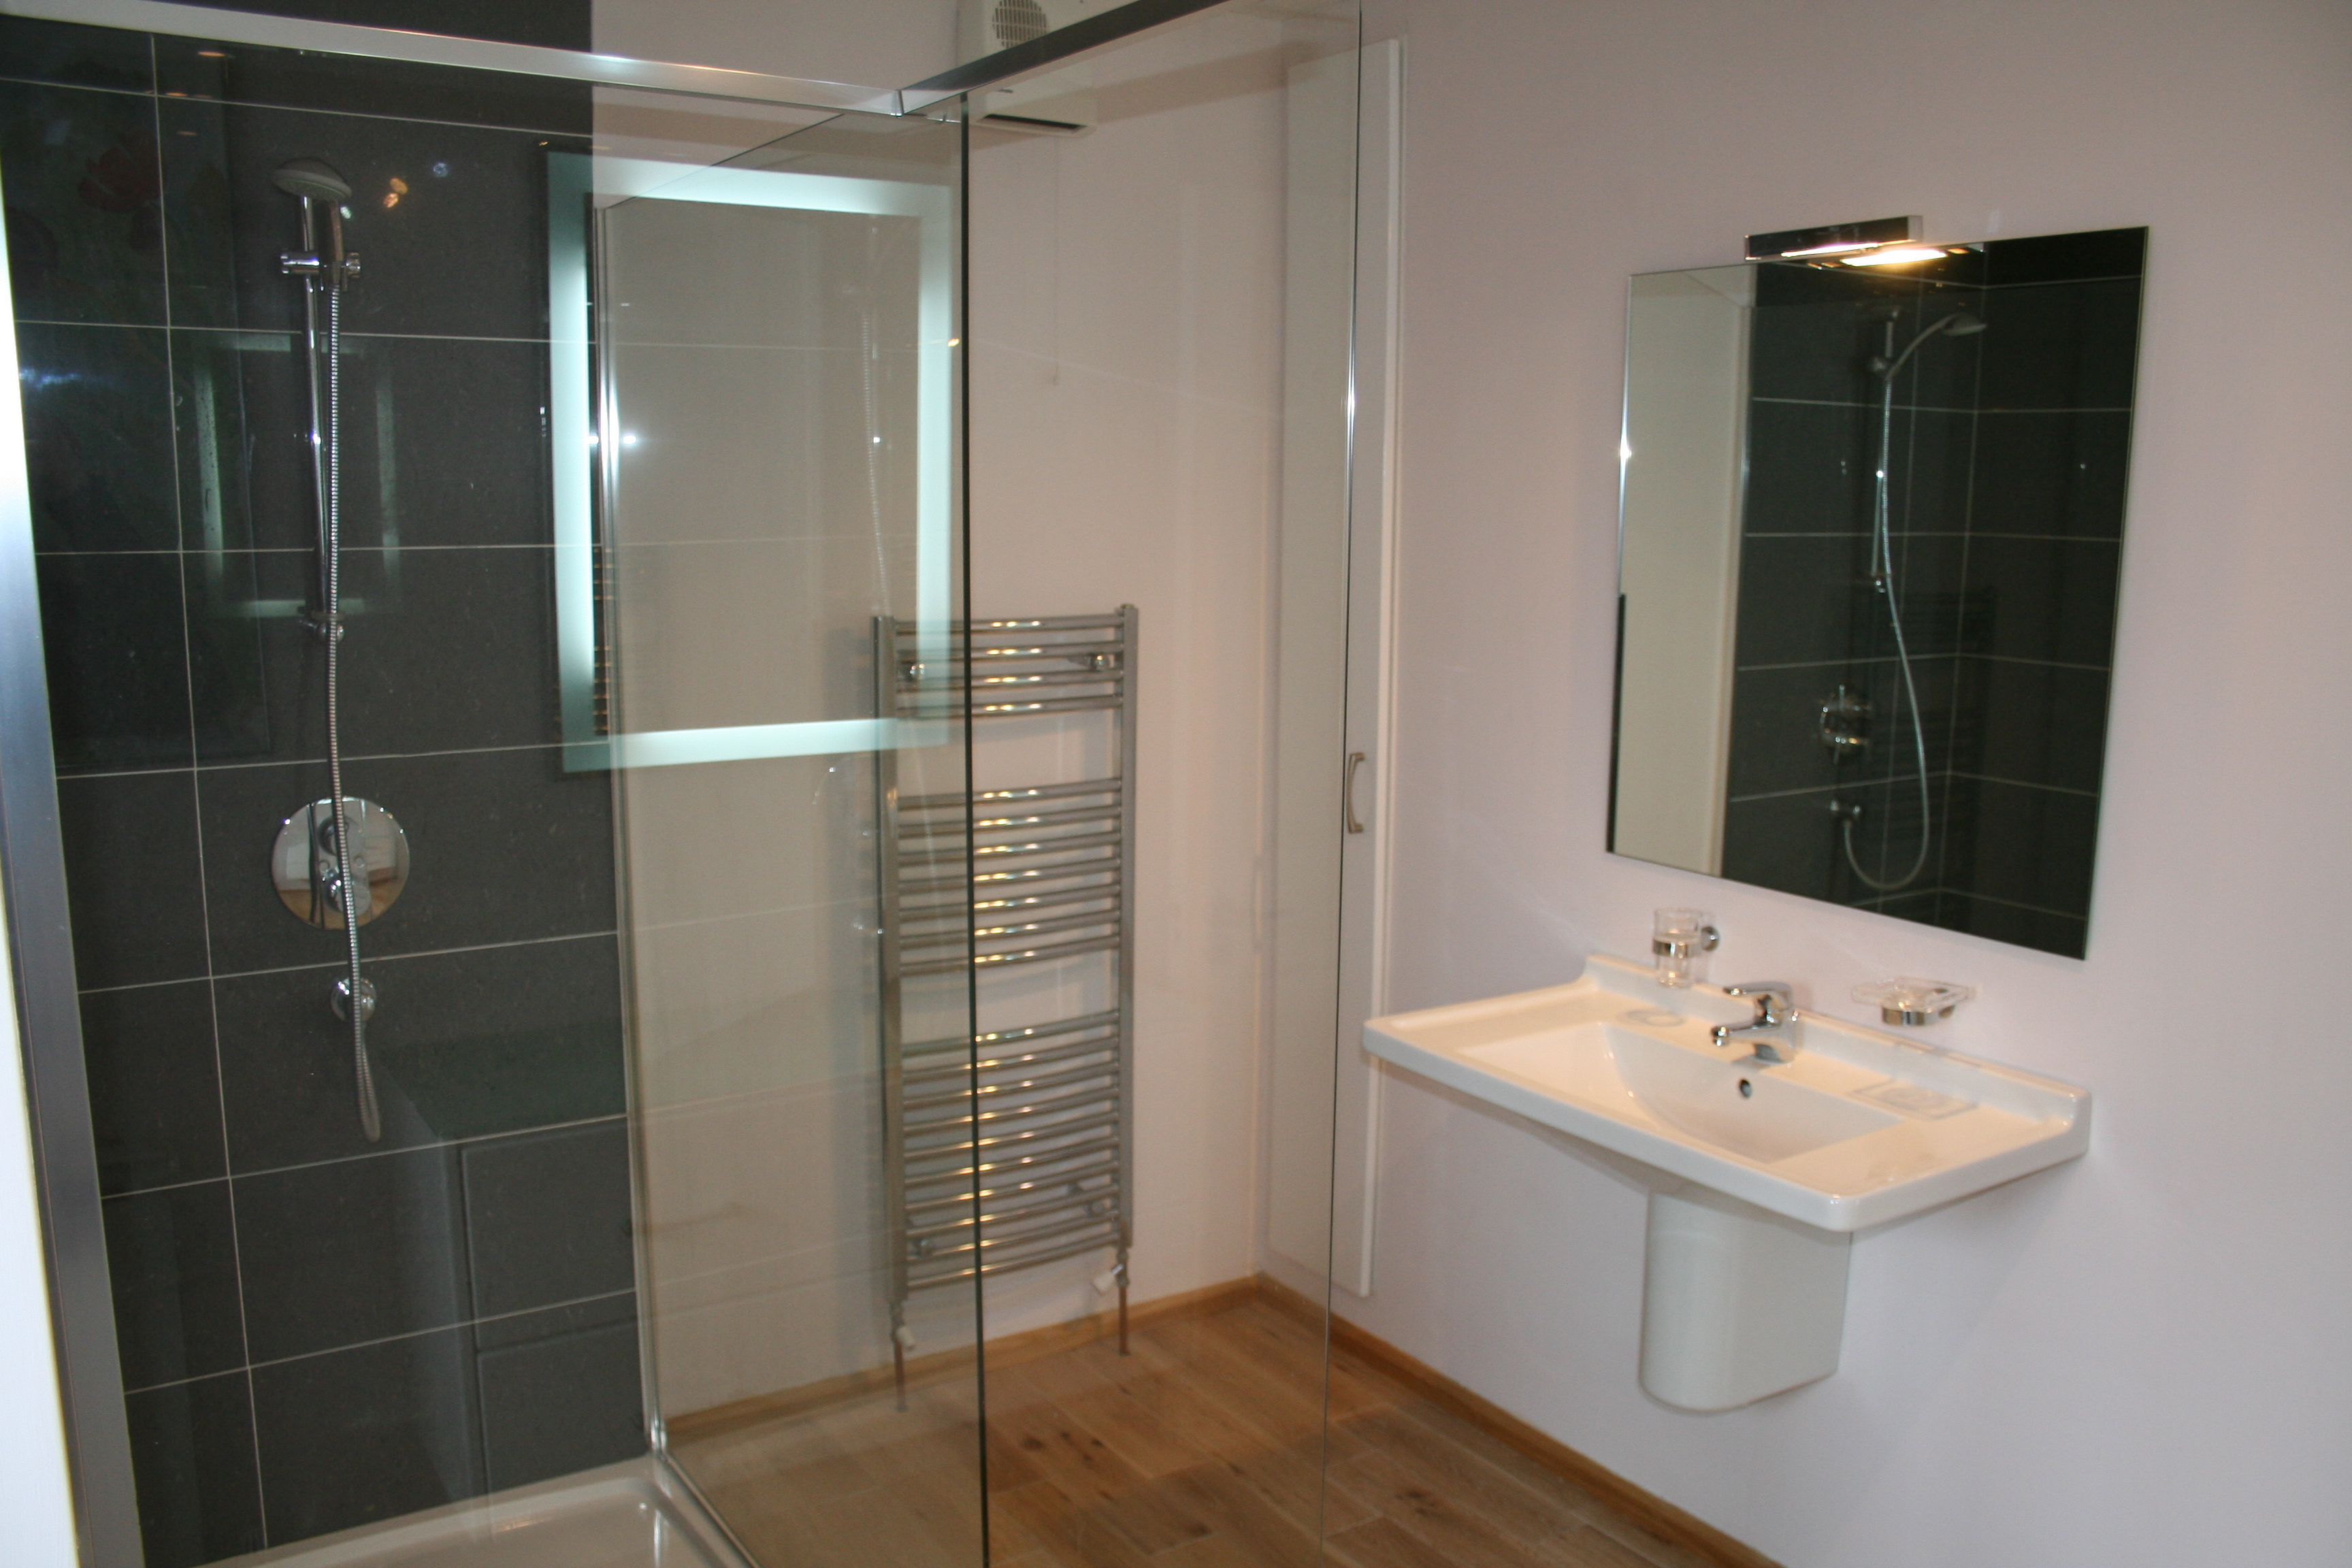 Shower, sink and heated towel rail